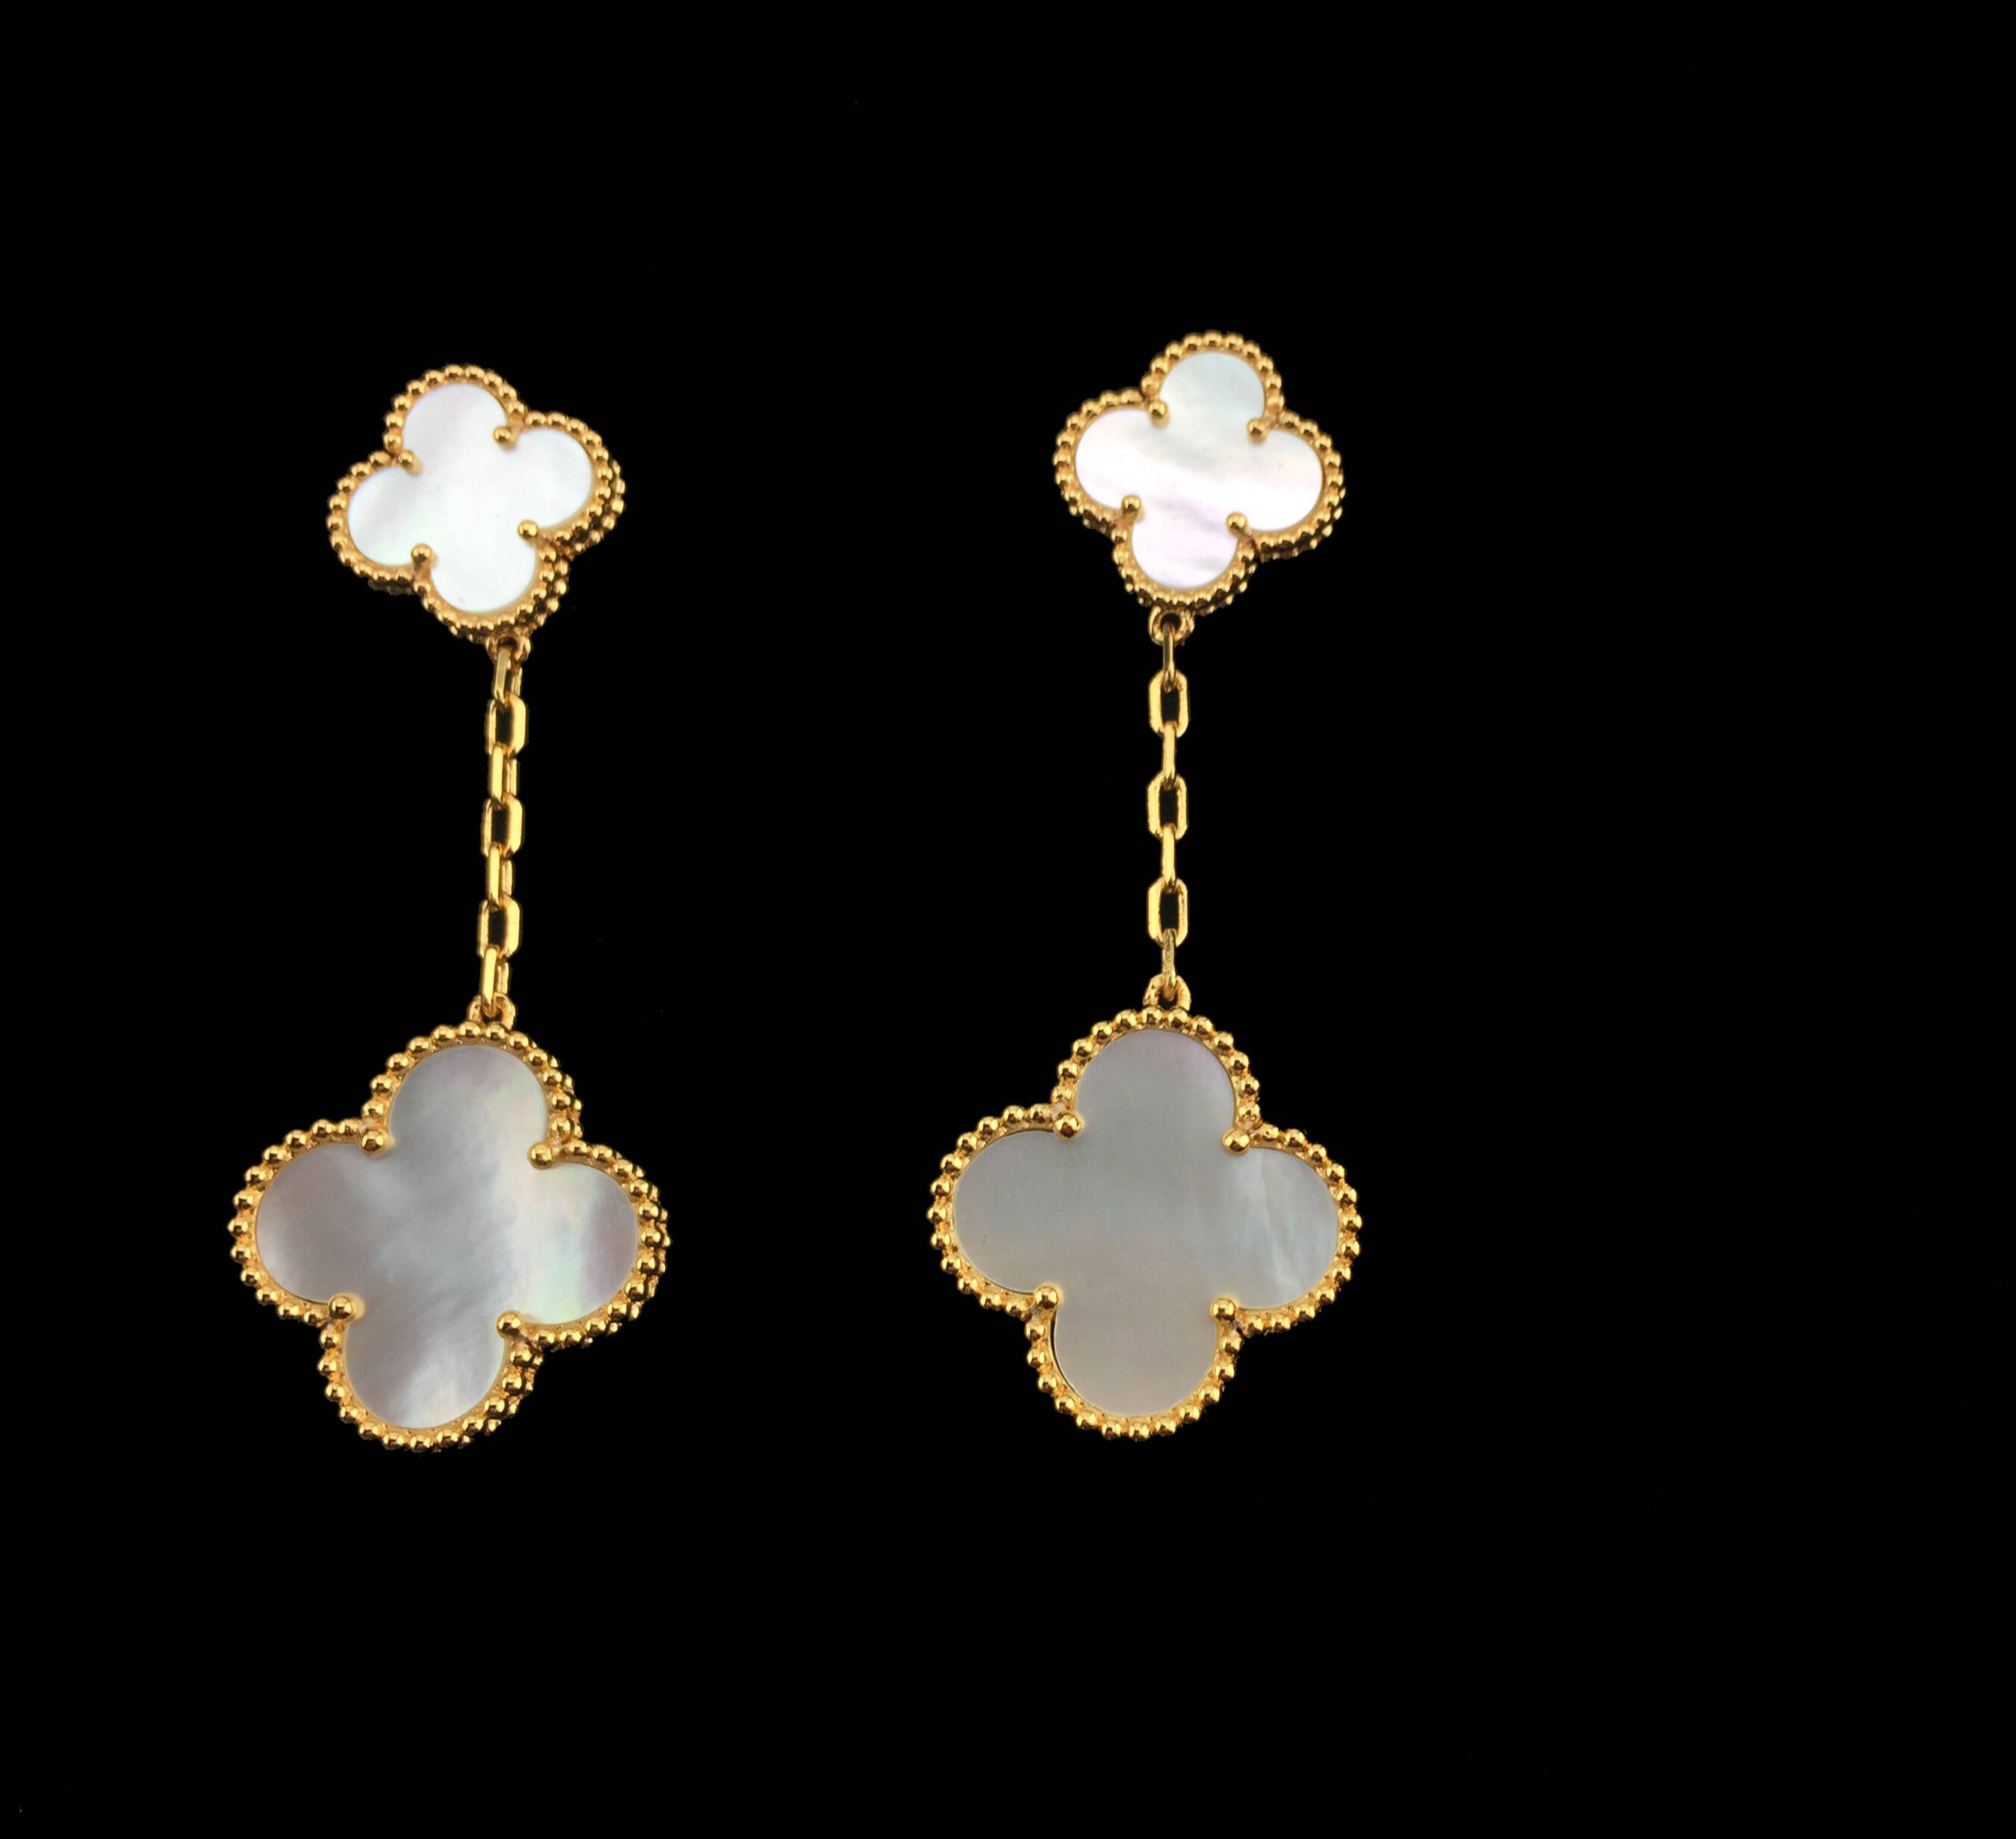 Gold Mother Of Pearl Clover Earrings 2 Motifs Inspired Van